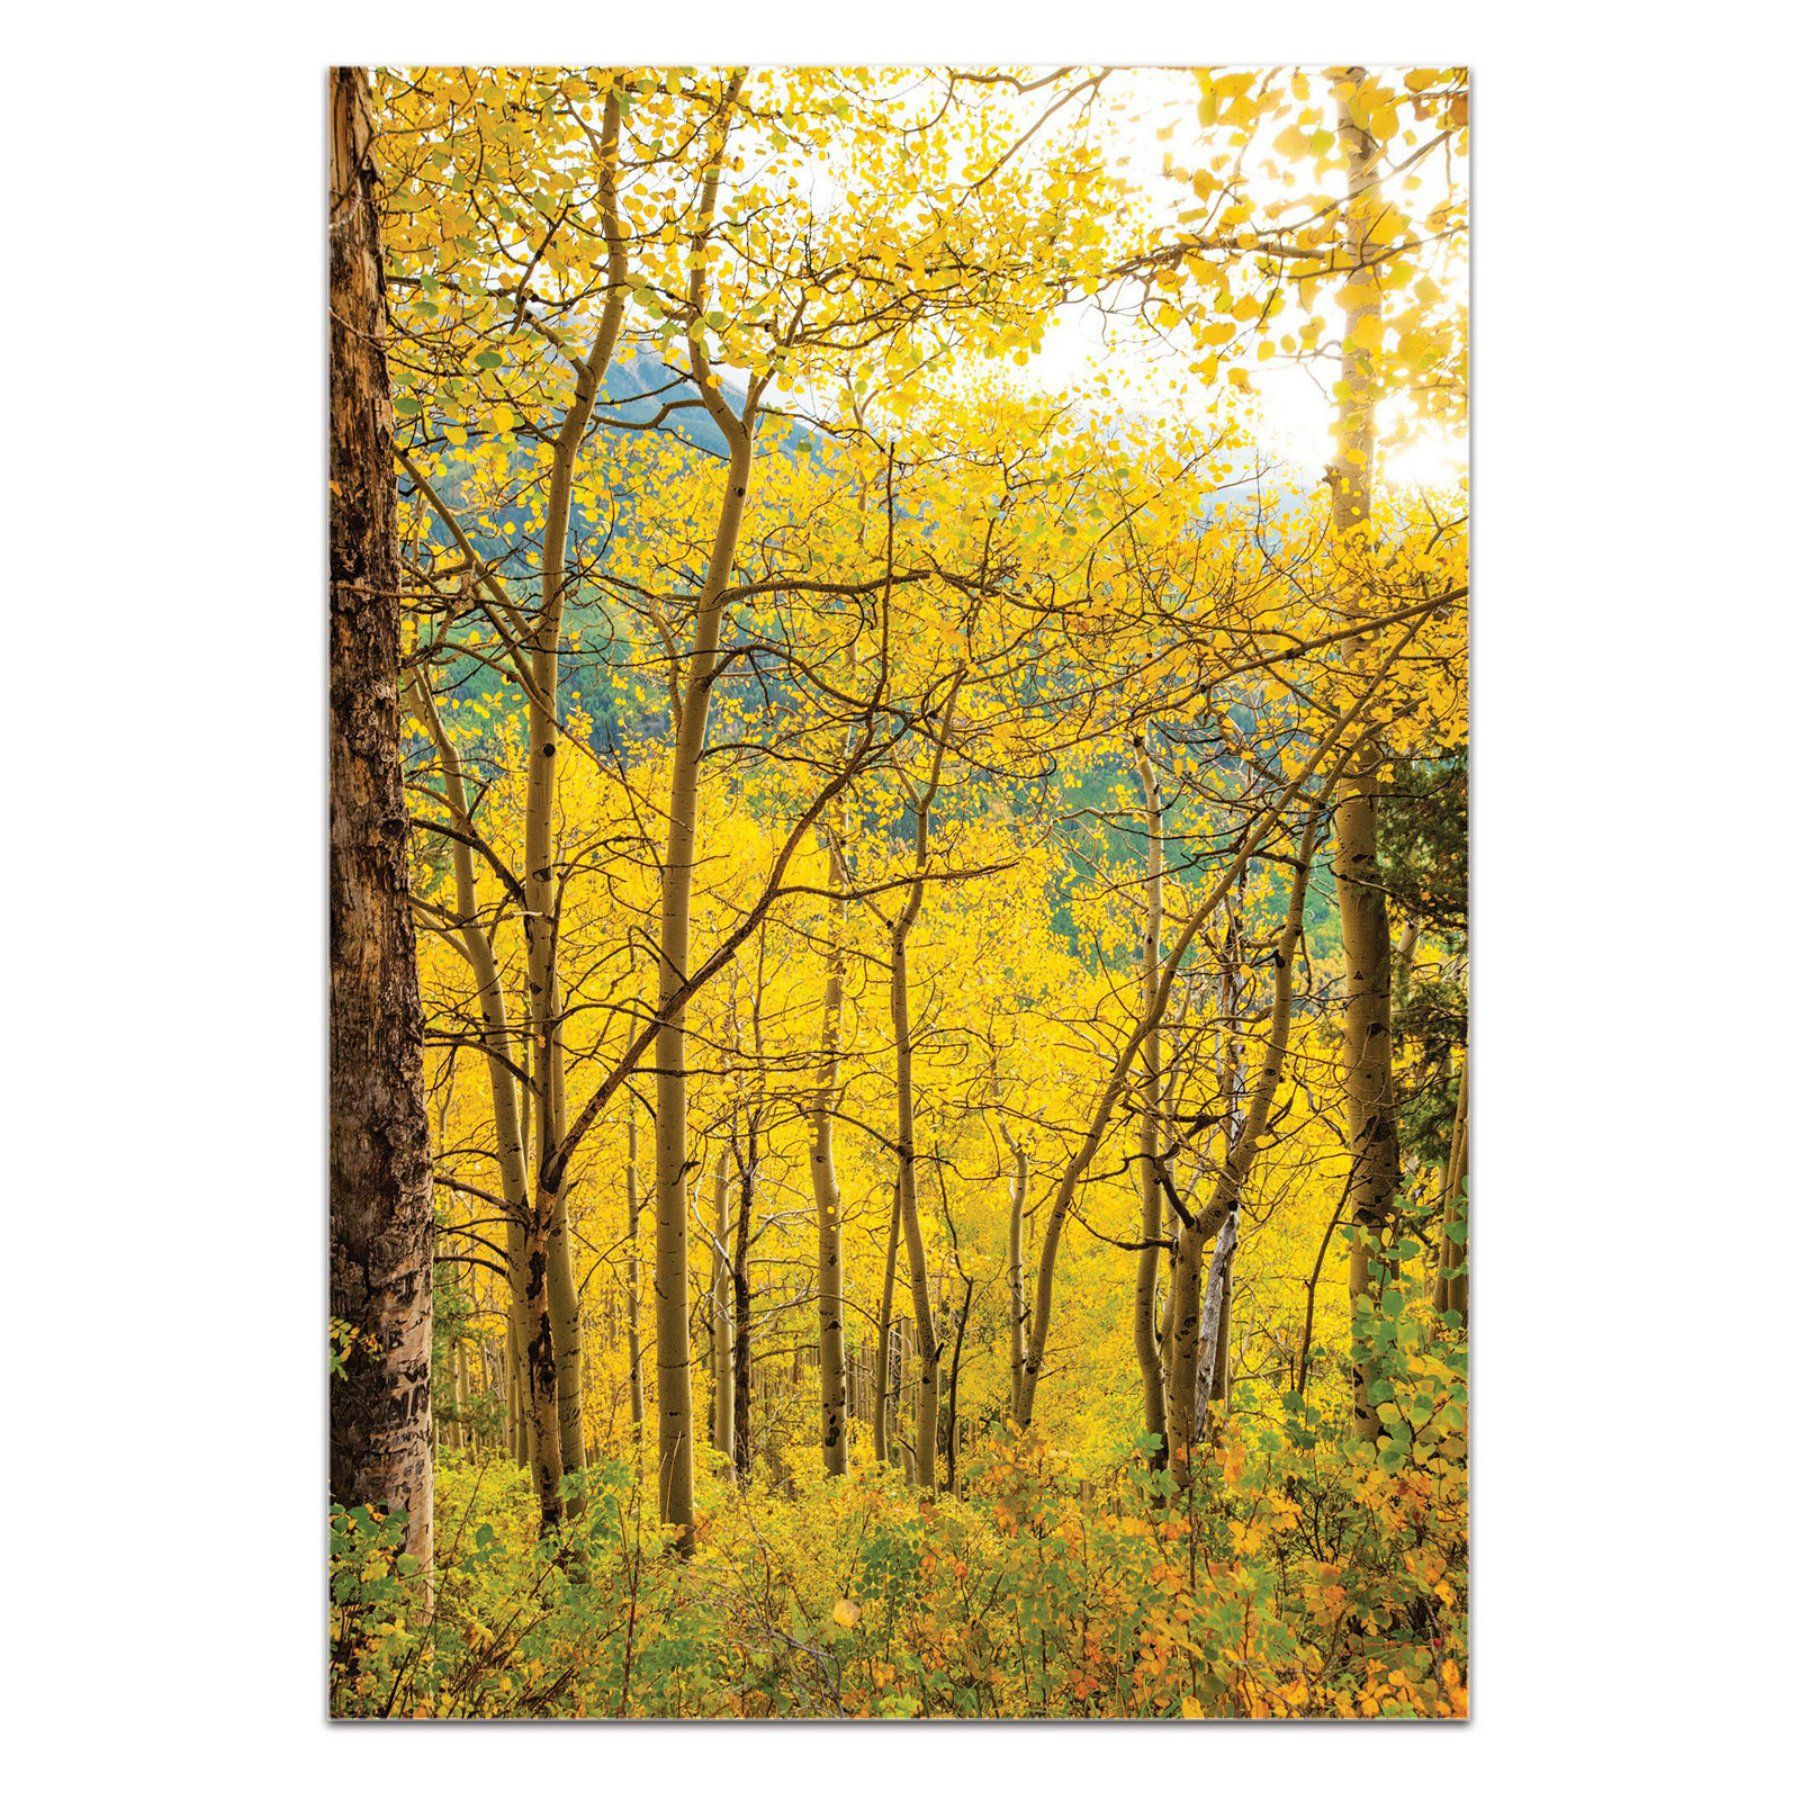 Metal Art Studio Aspen Path by Meirav Levy Wall Art - ME075MT | Products